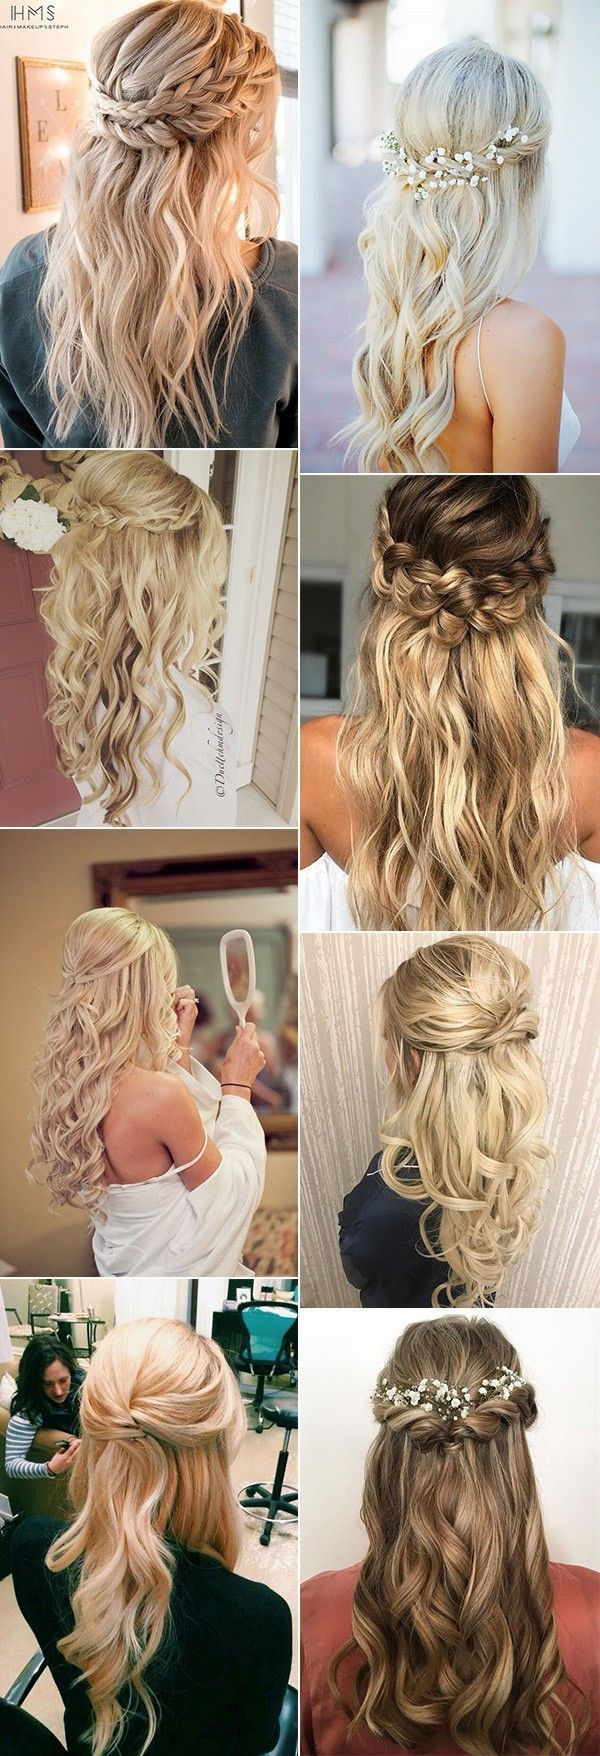 Peinados wedding pinterest cabello peinados and boda